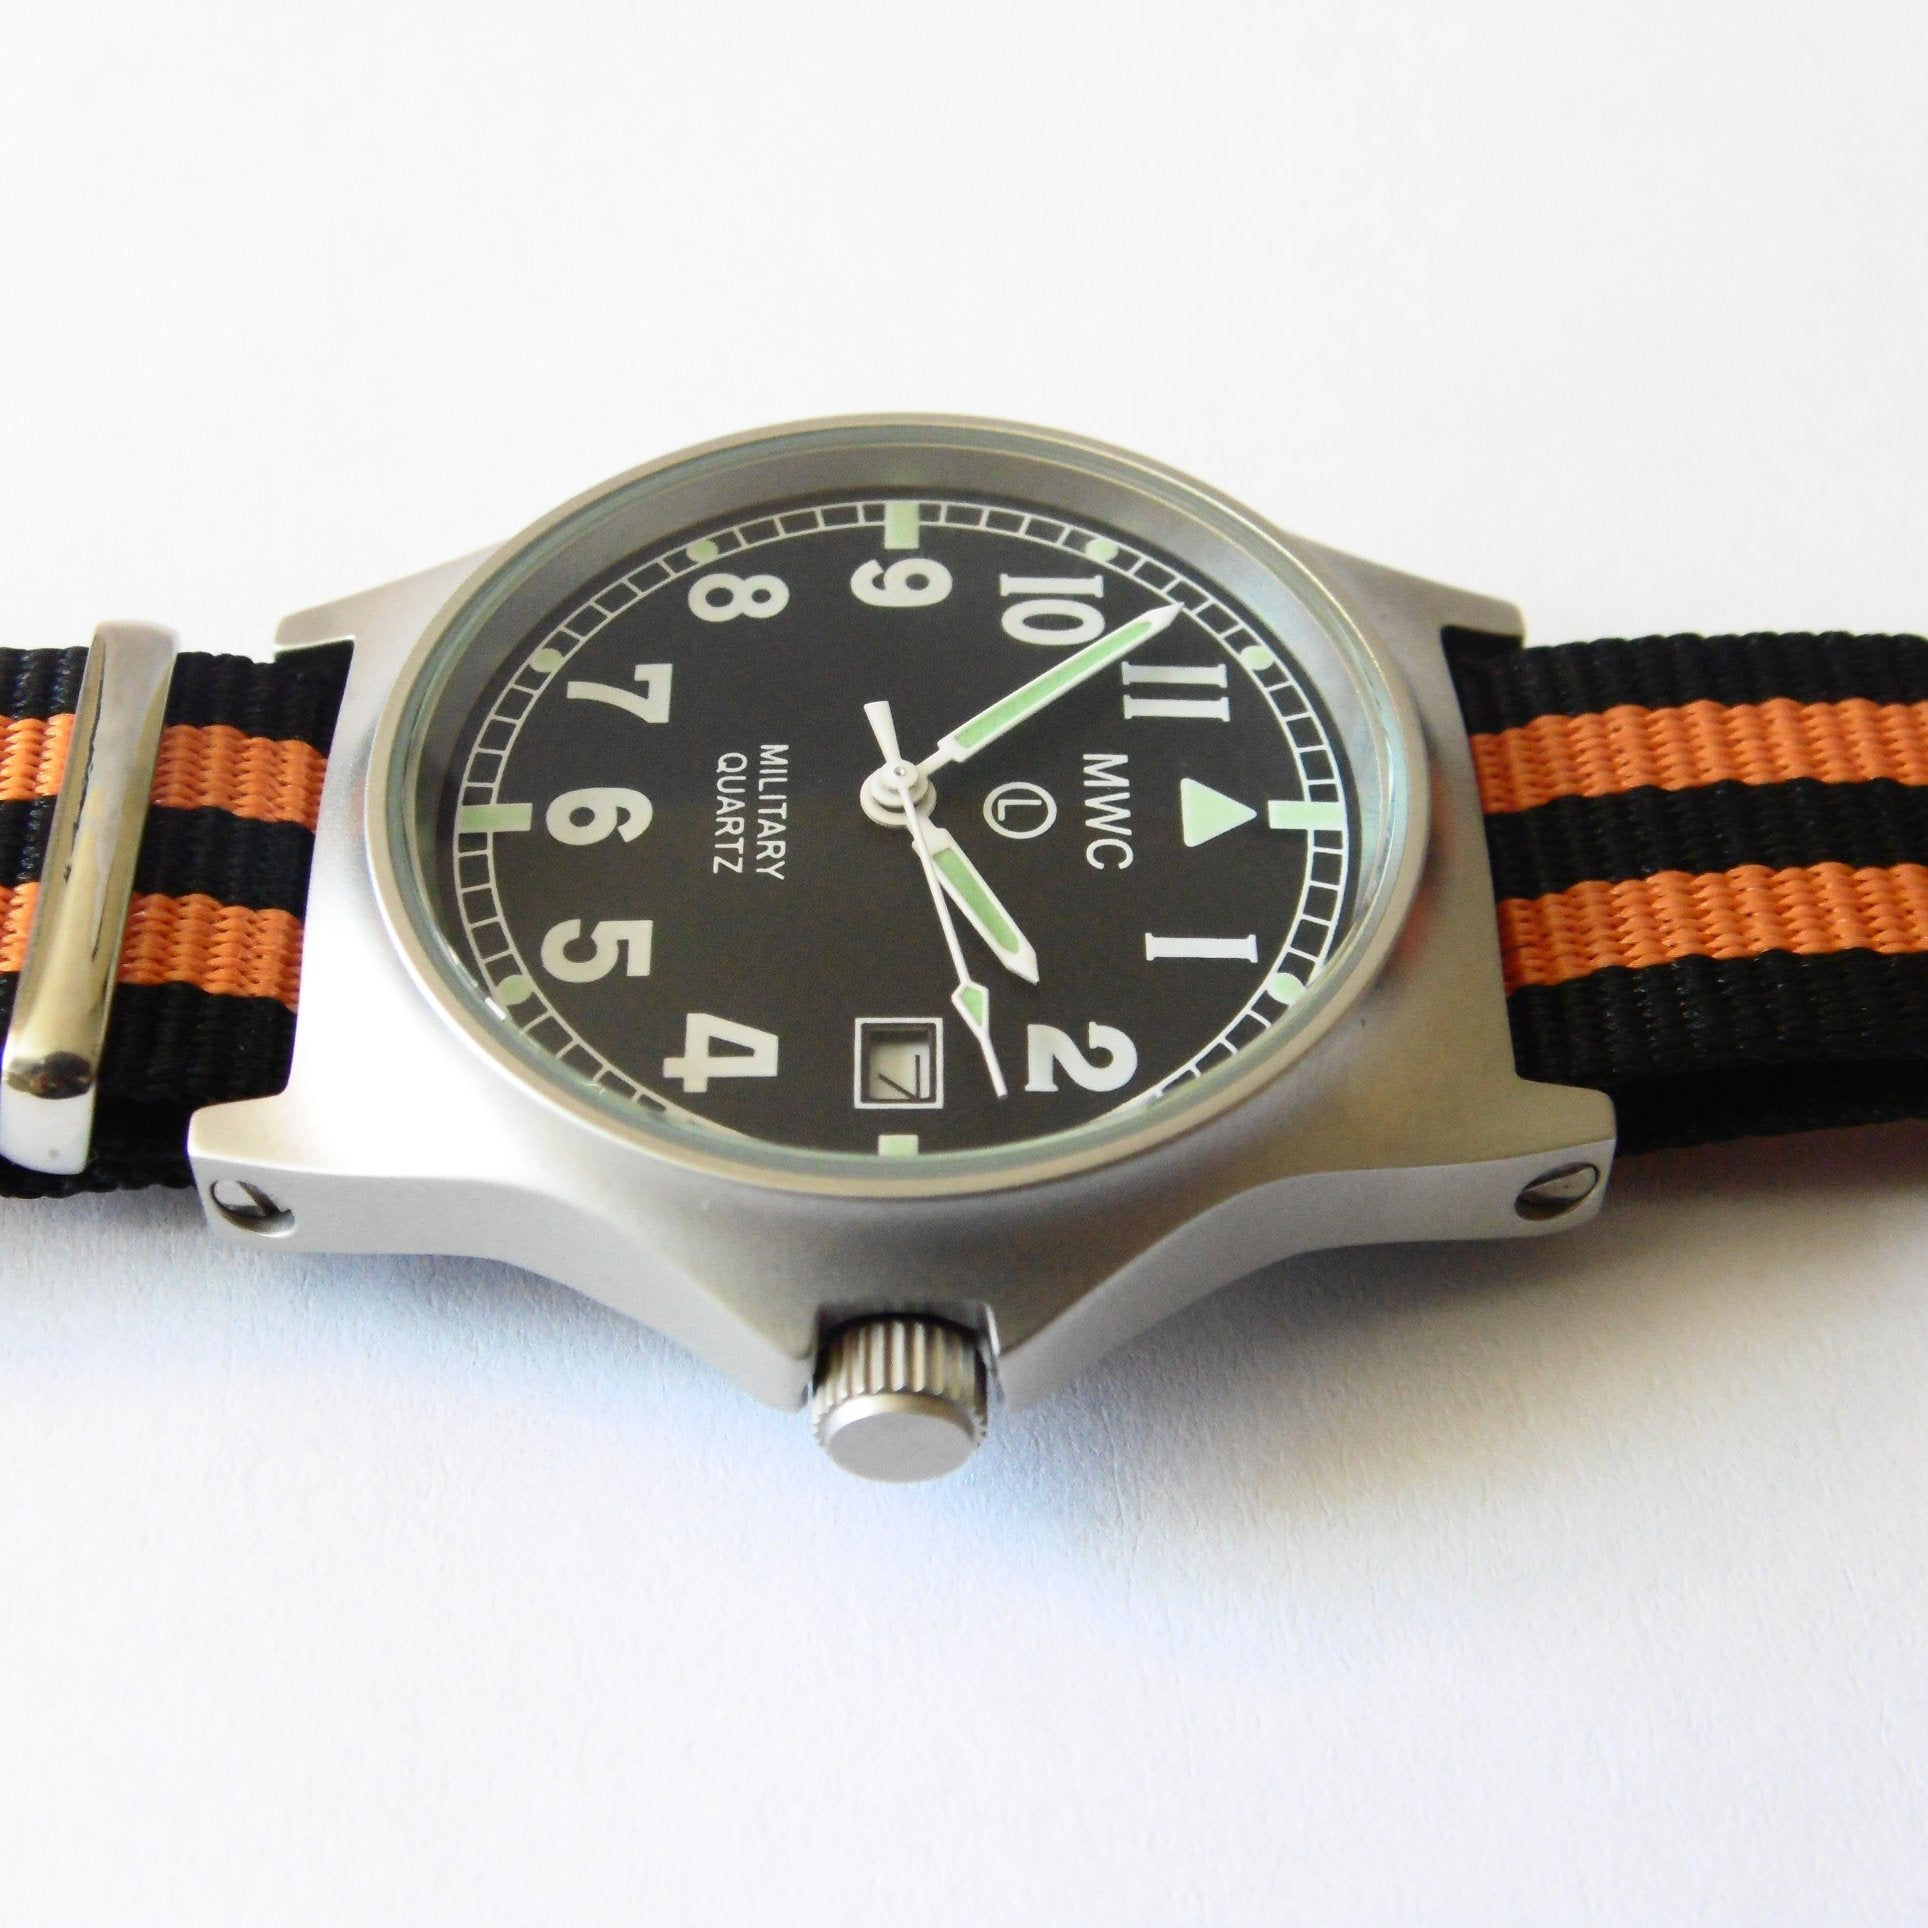 MWC G10 LM Military Watch (Black and Orange Nato Strap) - Watchfinder General - UK suppliers of Russian Vostok Parnis Watches MWC G10  - 3